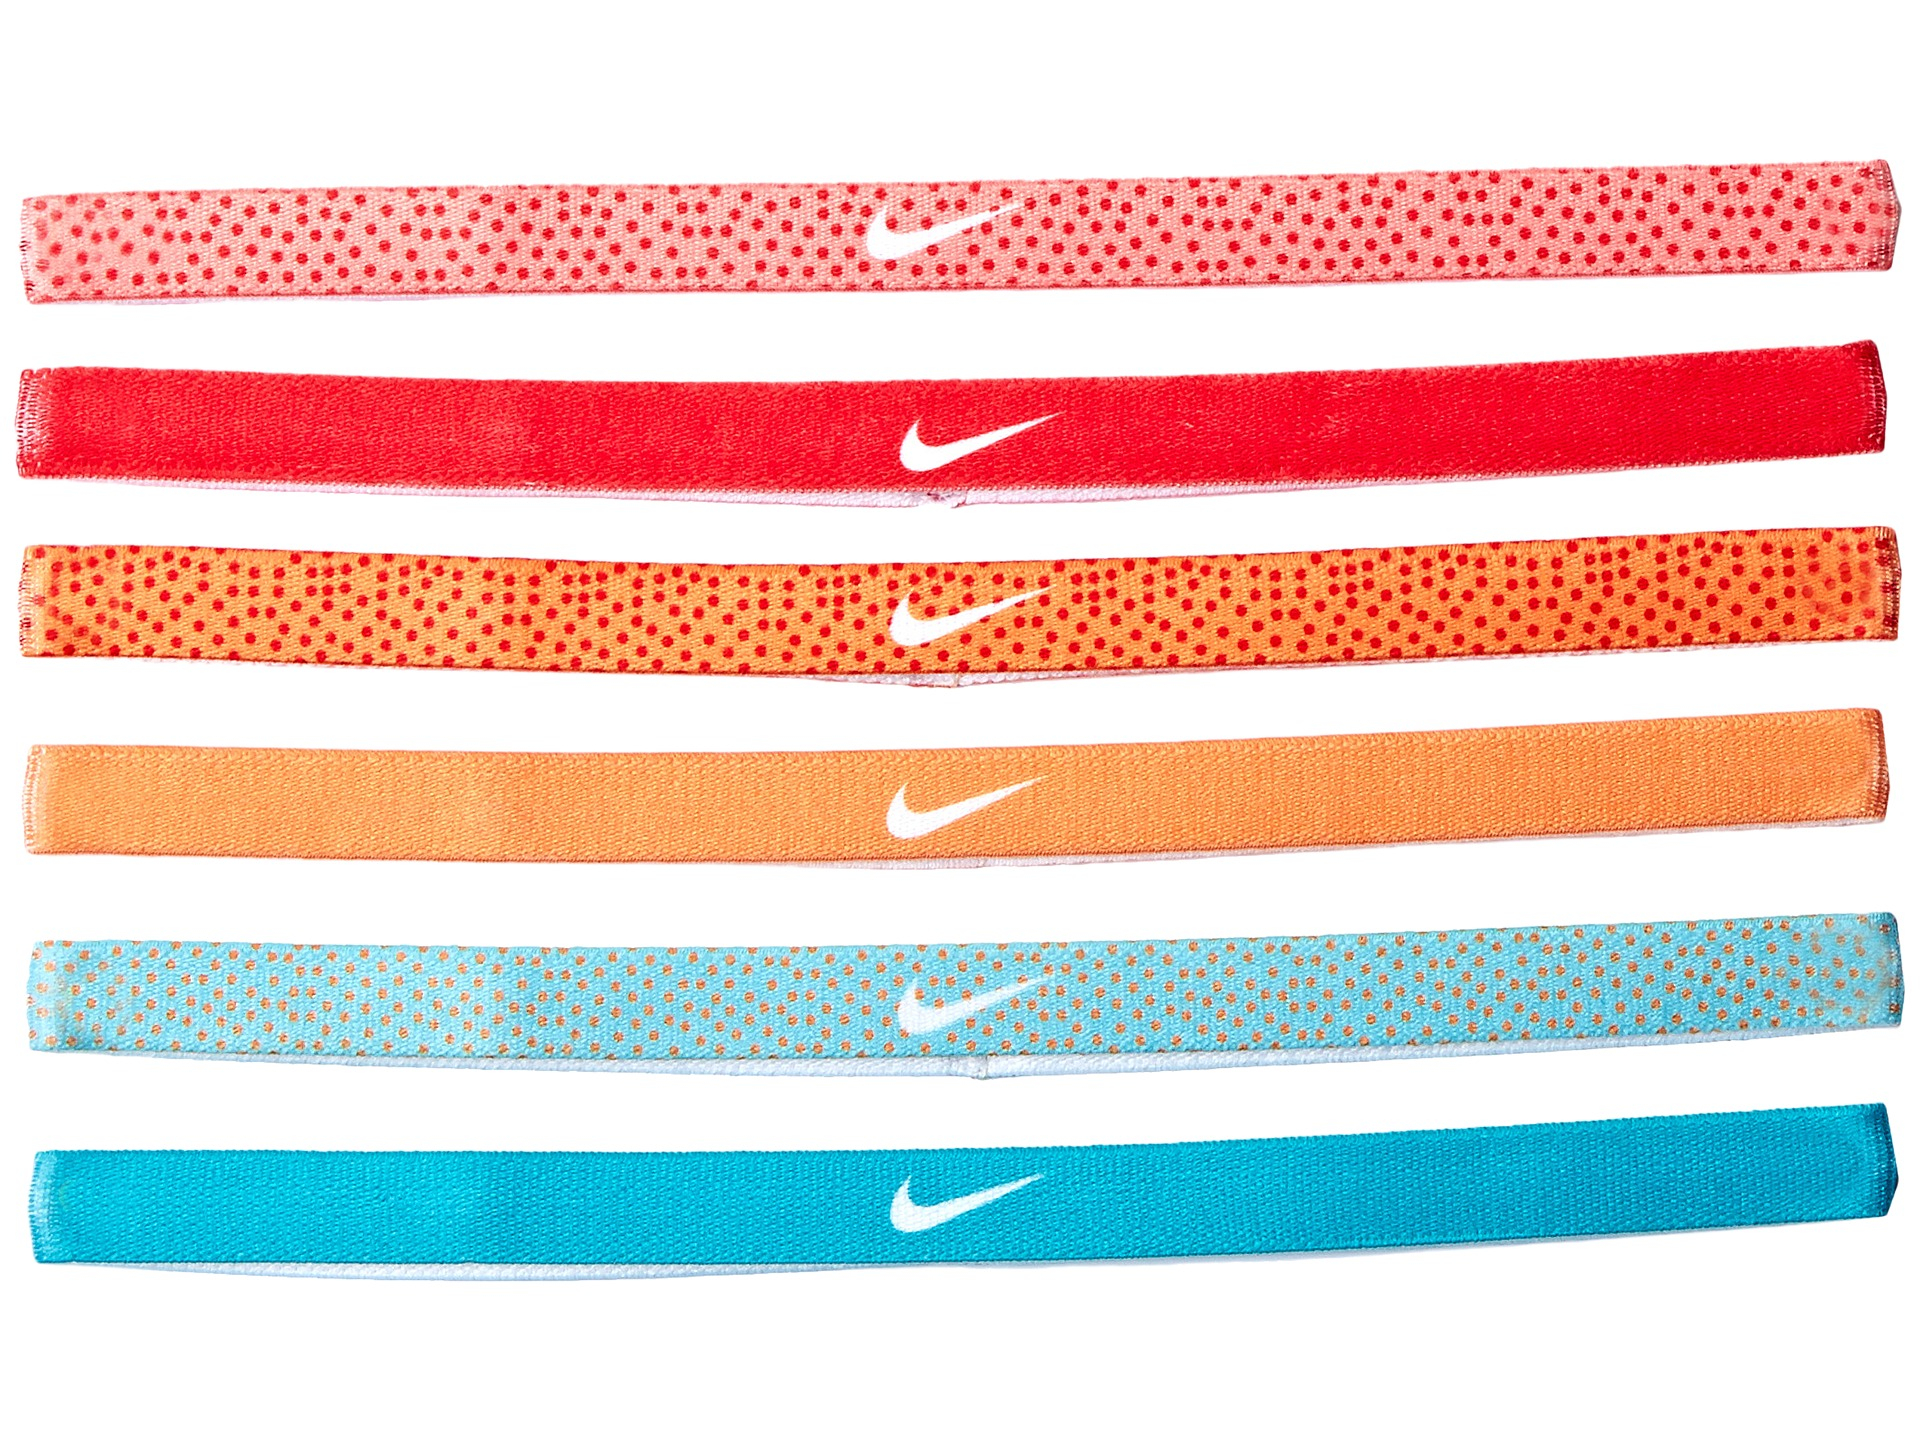 Lyst - Nike Printed Headbands Assorted 6-pack in Red db672d910ef